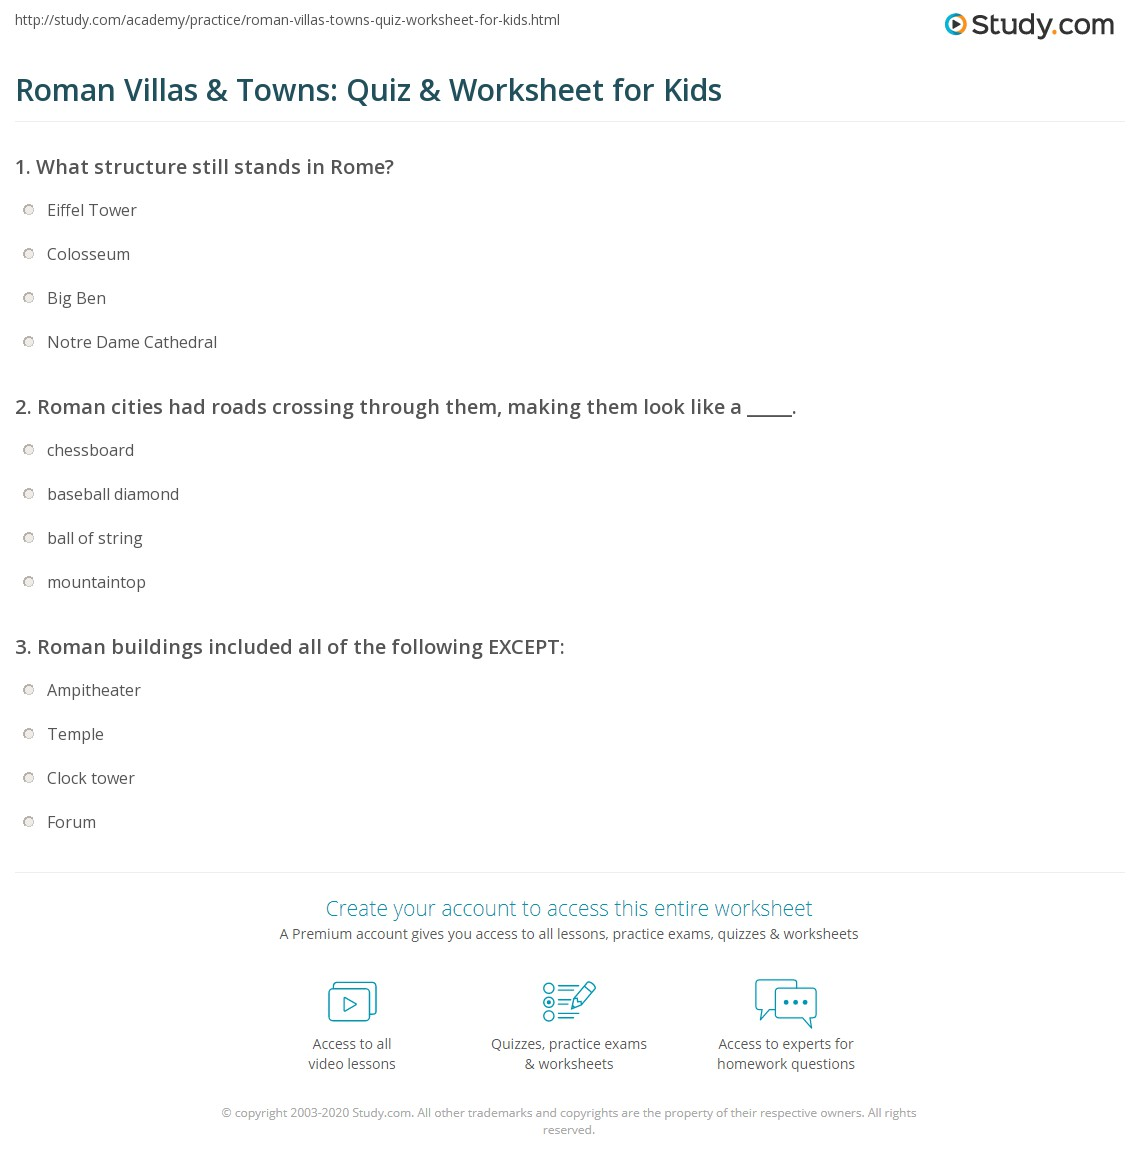 roman villas towns quiz worksheet for kids. Black Bedroom Furniture Sets. Home Design Ideas